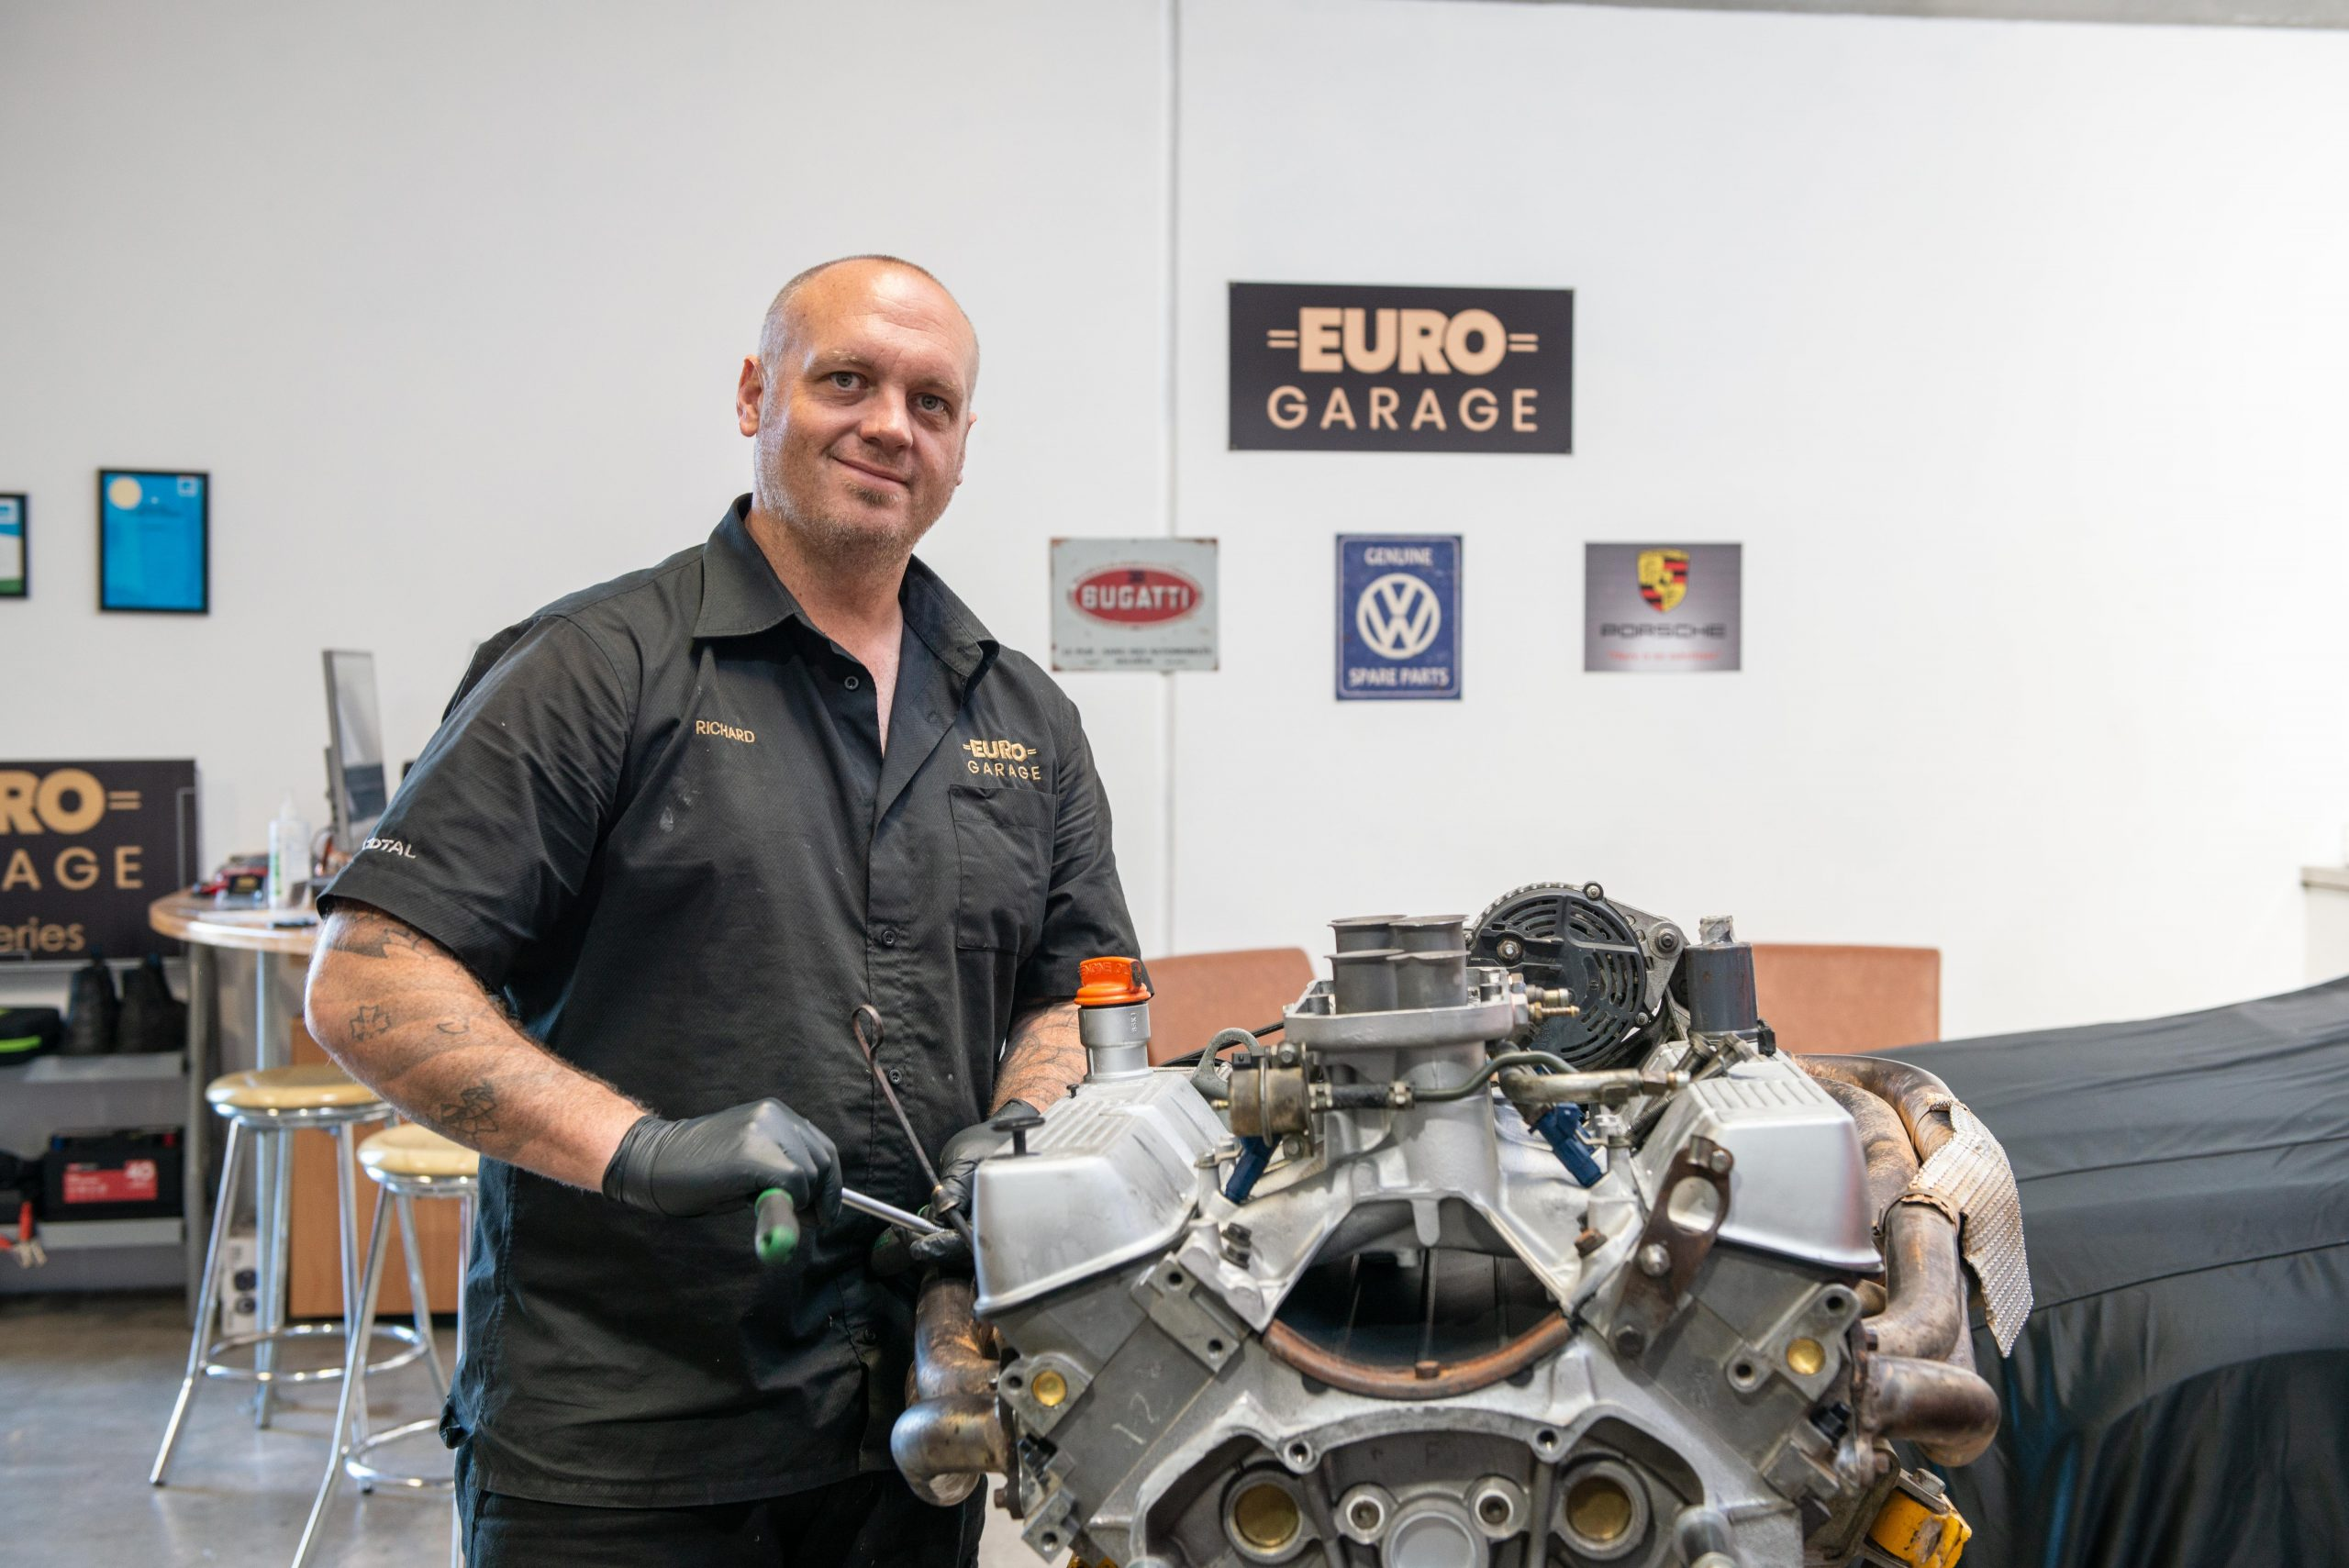 Richard Ross from Euro Garage works on an engine